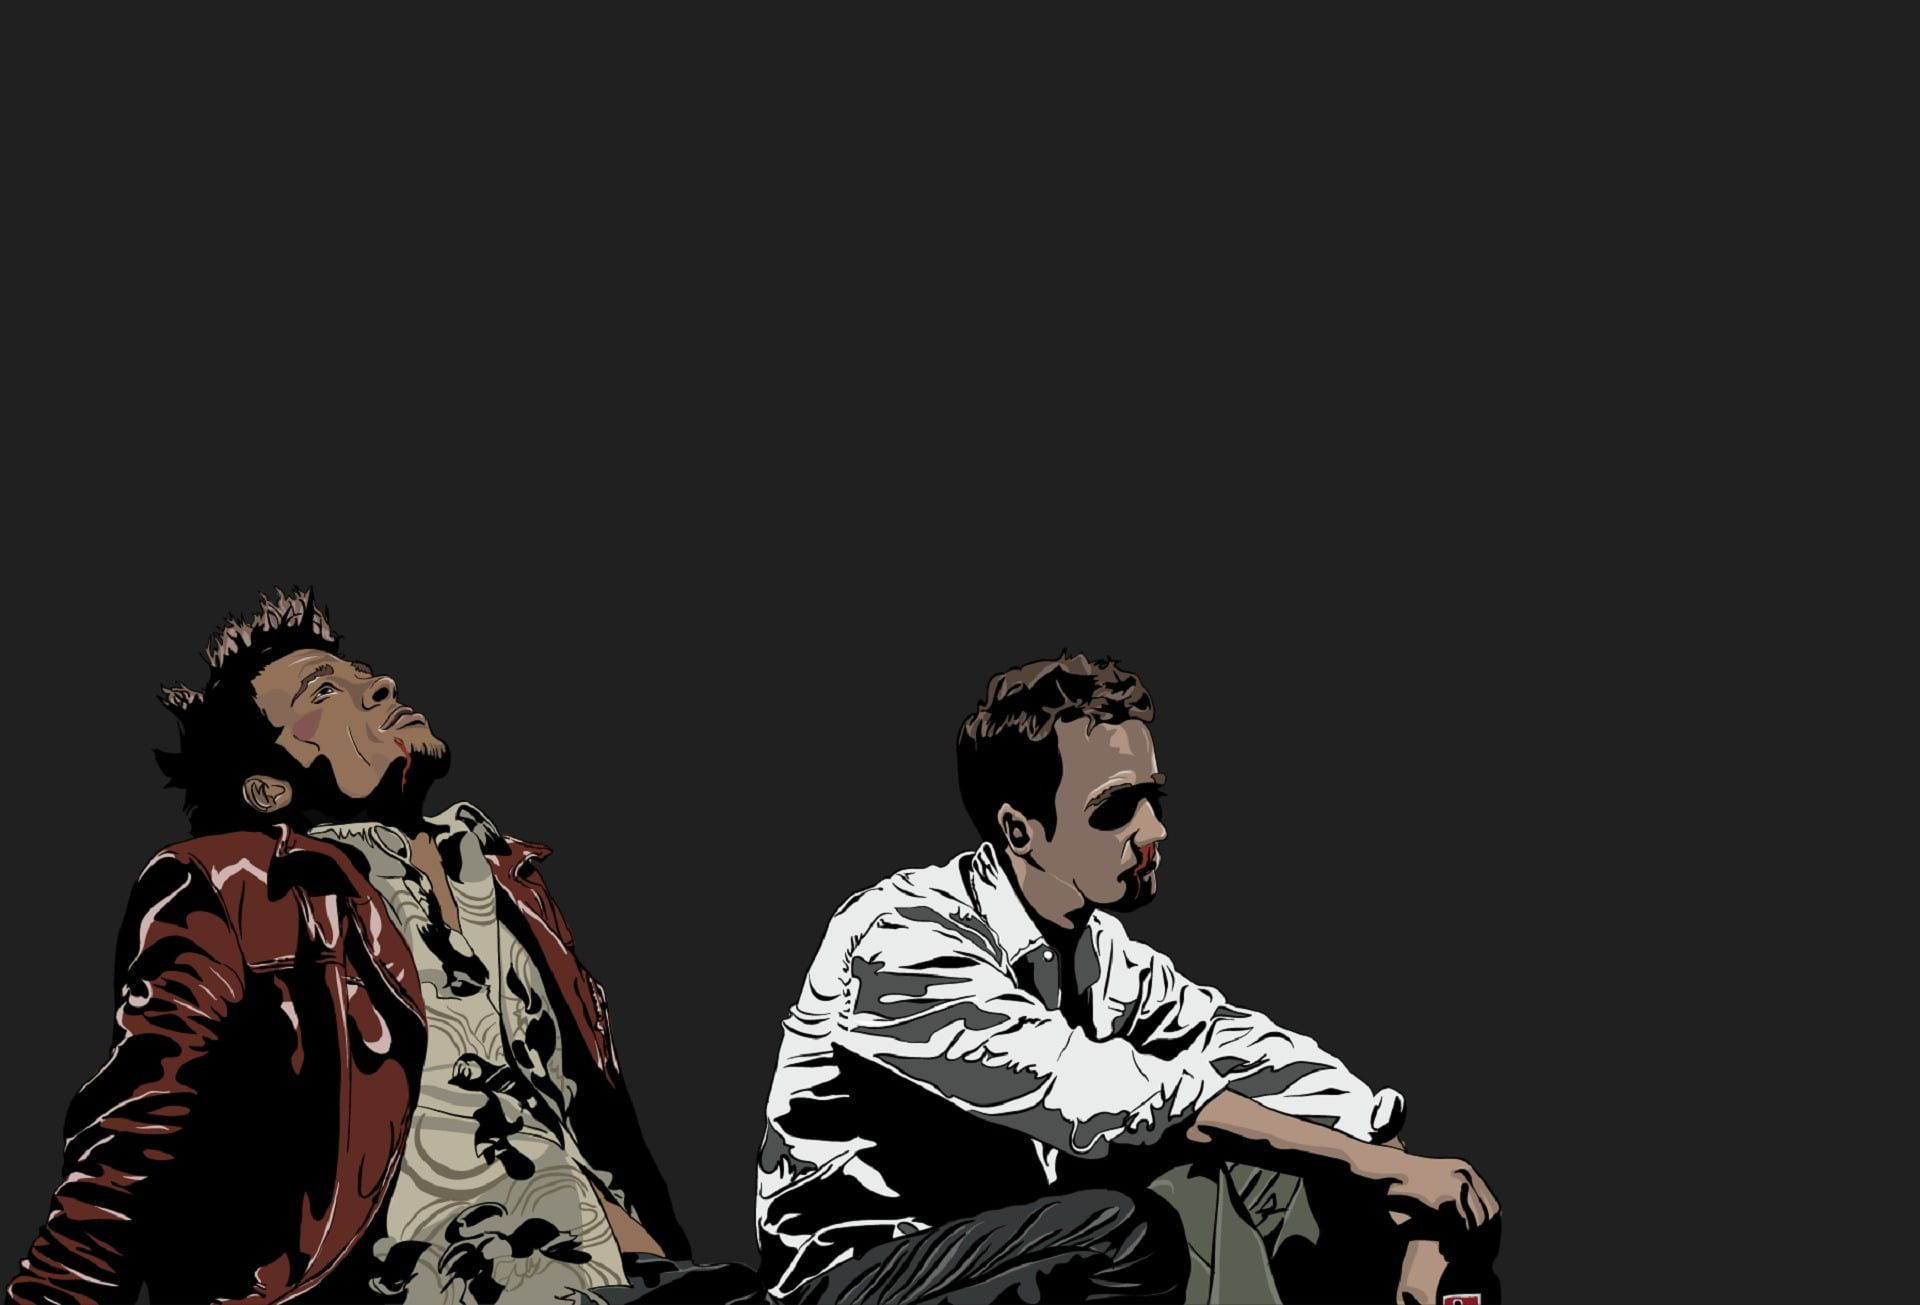 Two Men Sitting Vector Art Fight Club Movies Vector 1080p Wallpaper Hdwallpaper Desktop Fight Club Poster Fight Club Fight Club 1999 Fight club desktop wallpaper hd